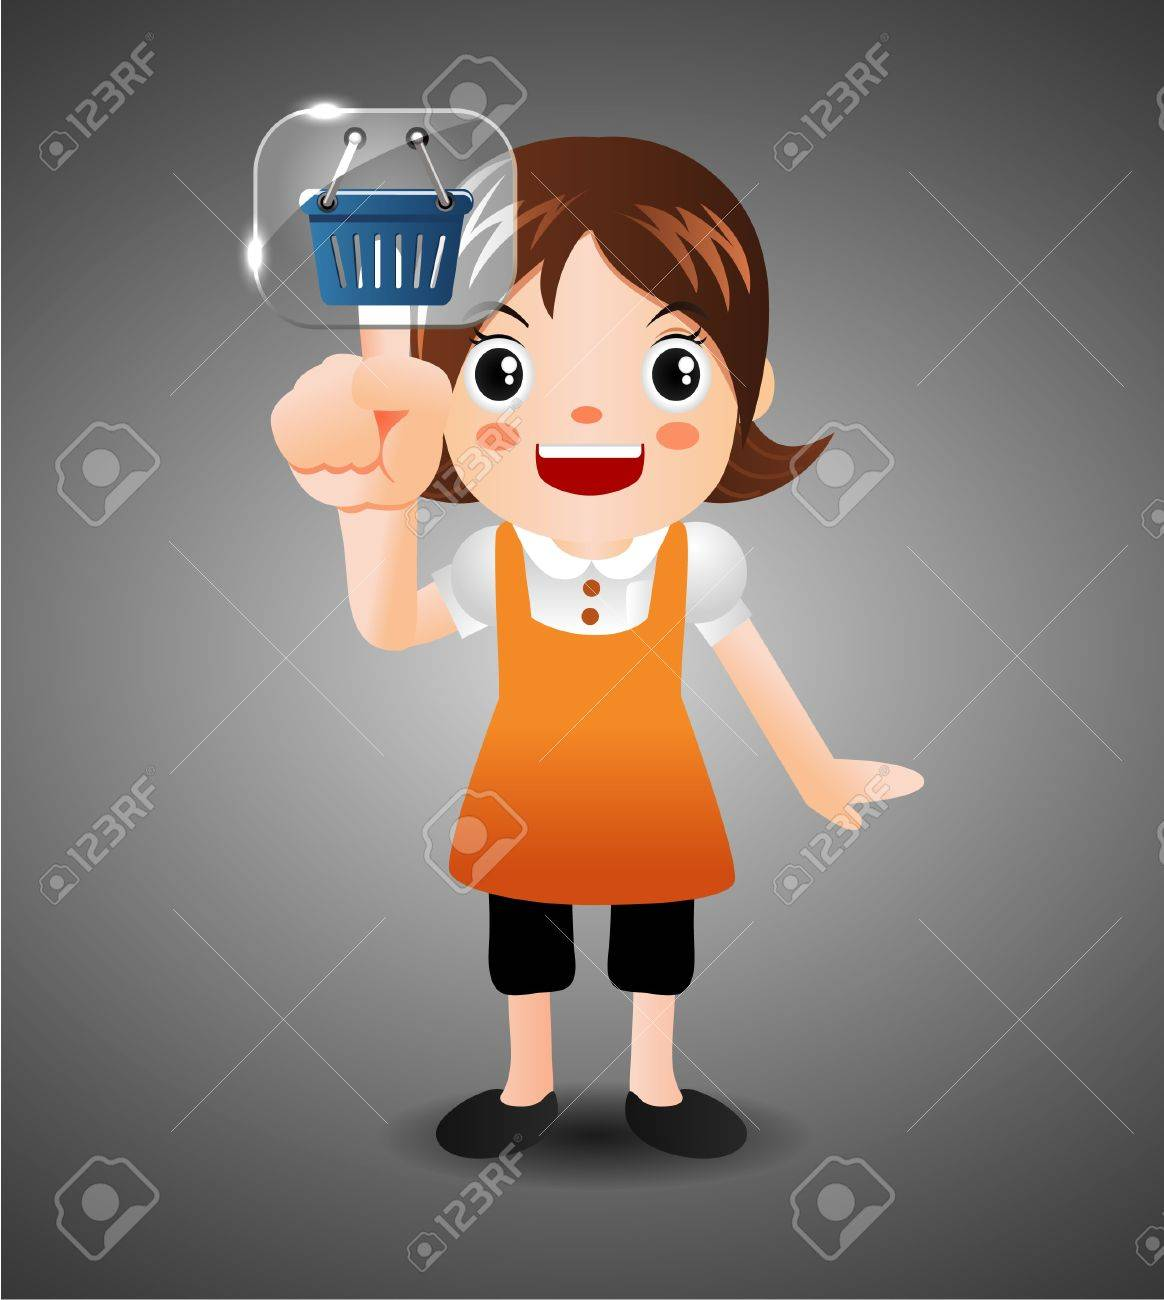 cartoon girl  touching the screen with her finger Stock Vector - 10135316